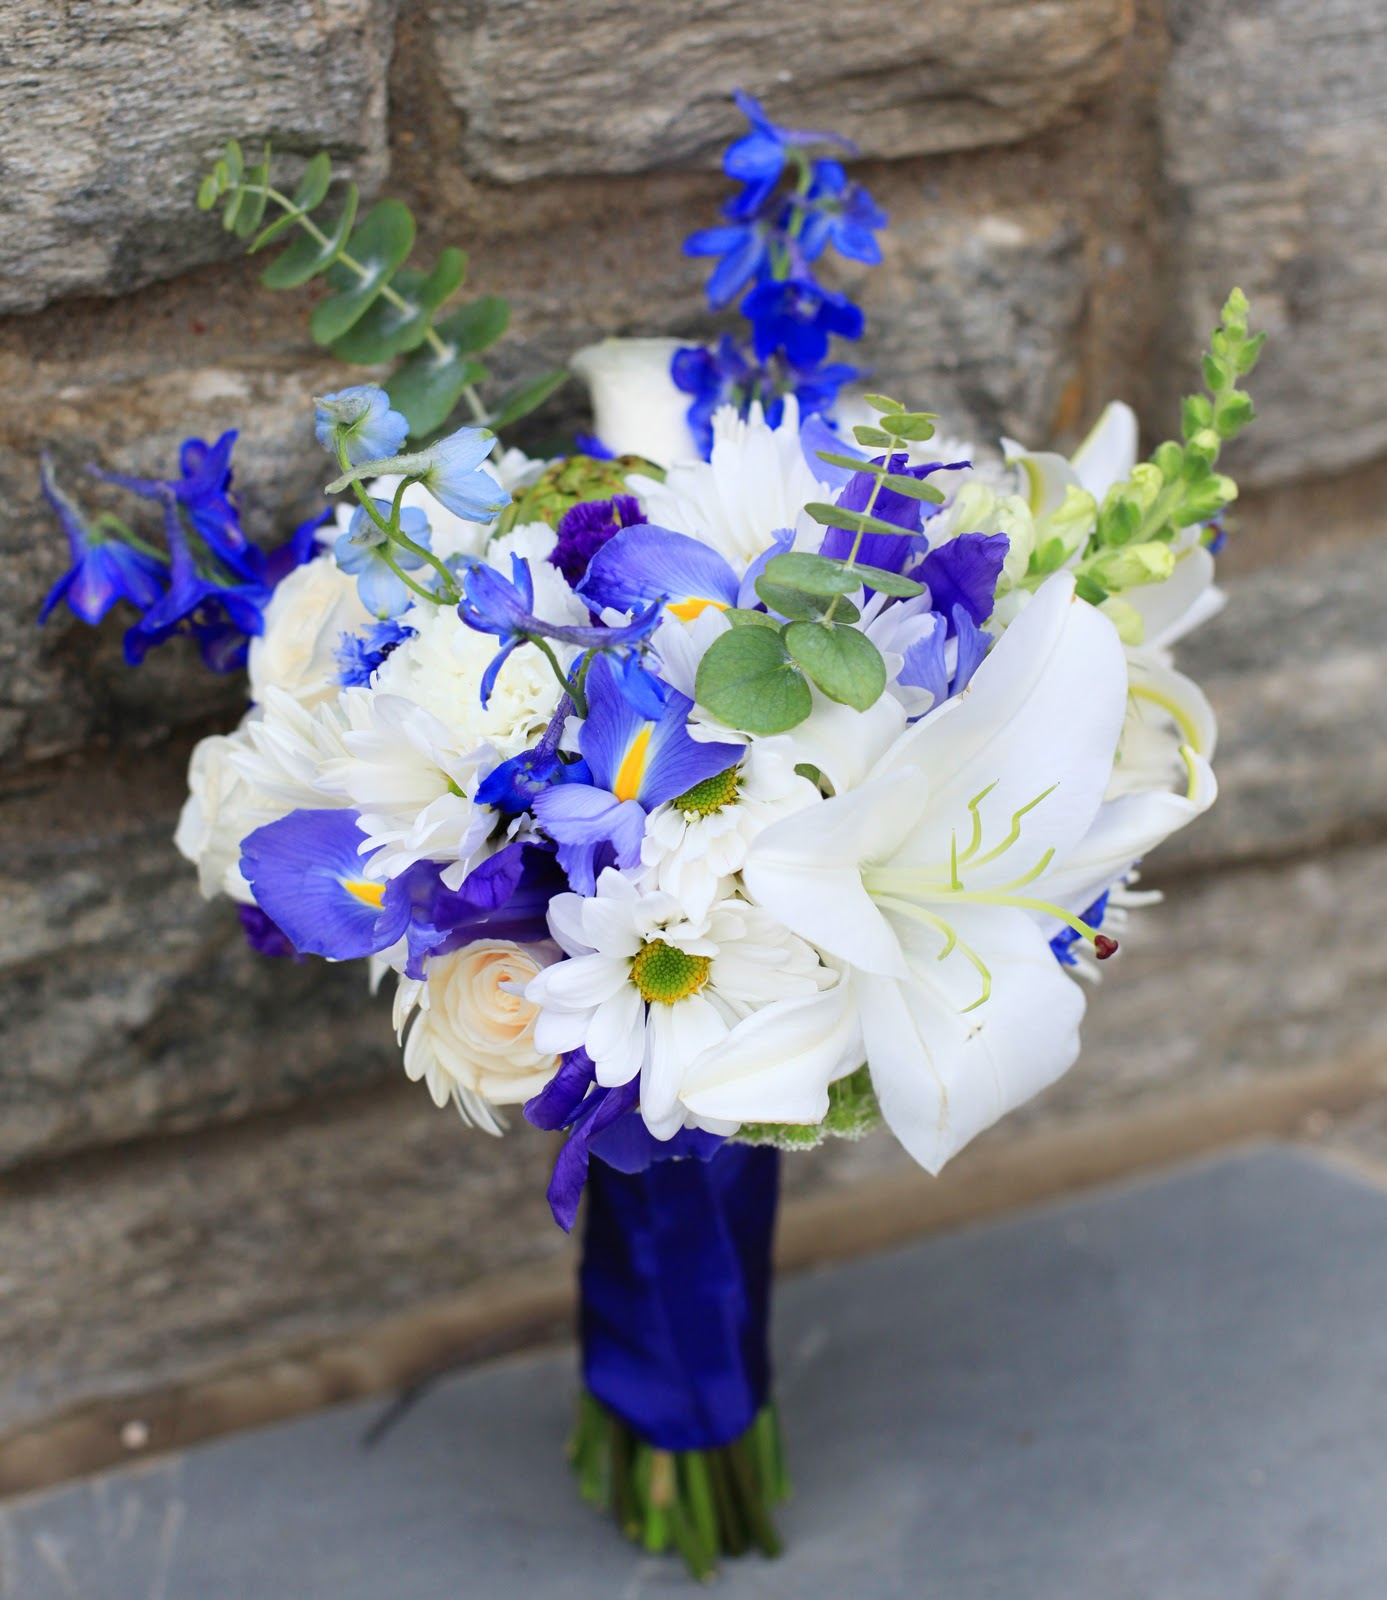 Blue And White Flowers For Weddings: BonnieProjects: DIY Blue And White Bouquets And Boutonnieres